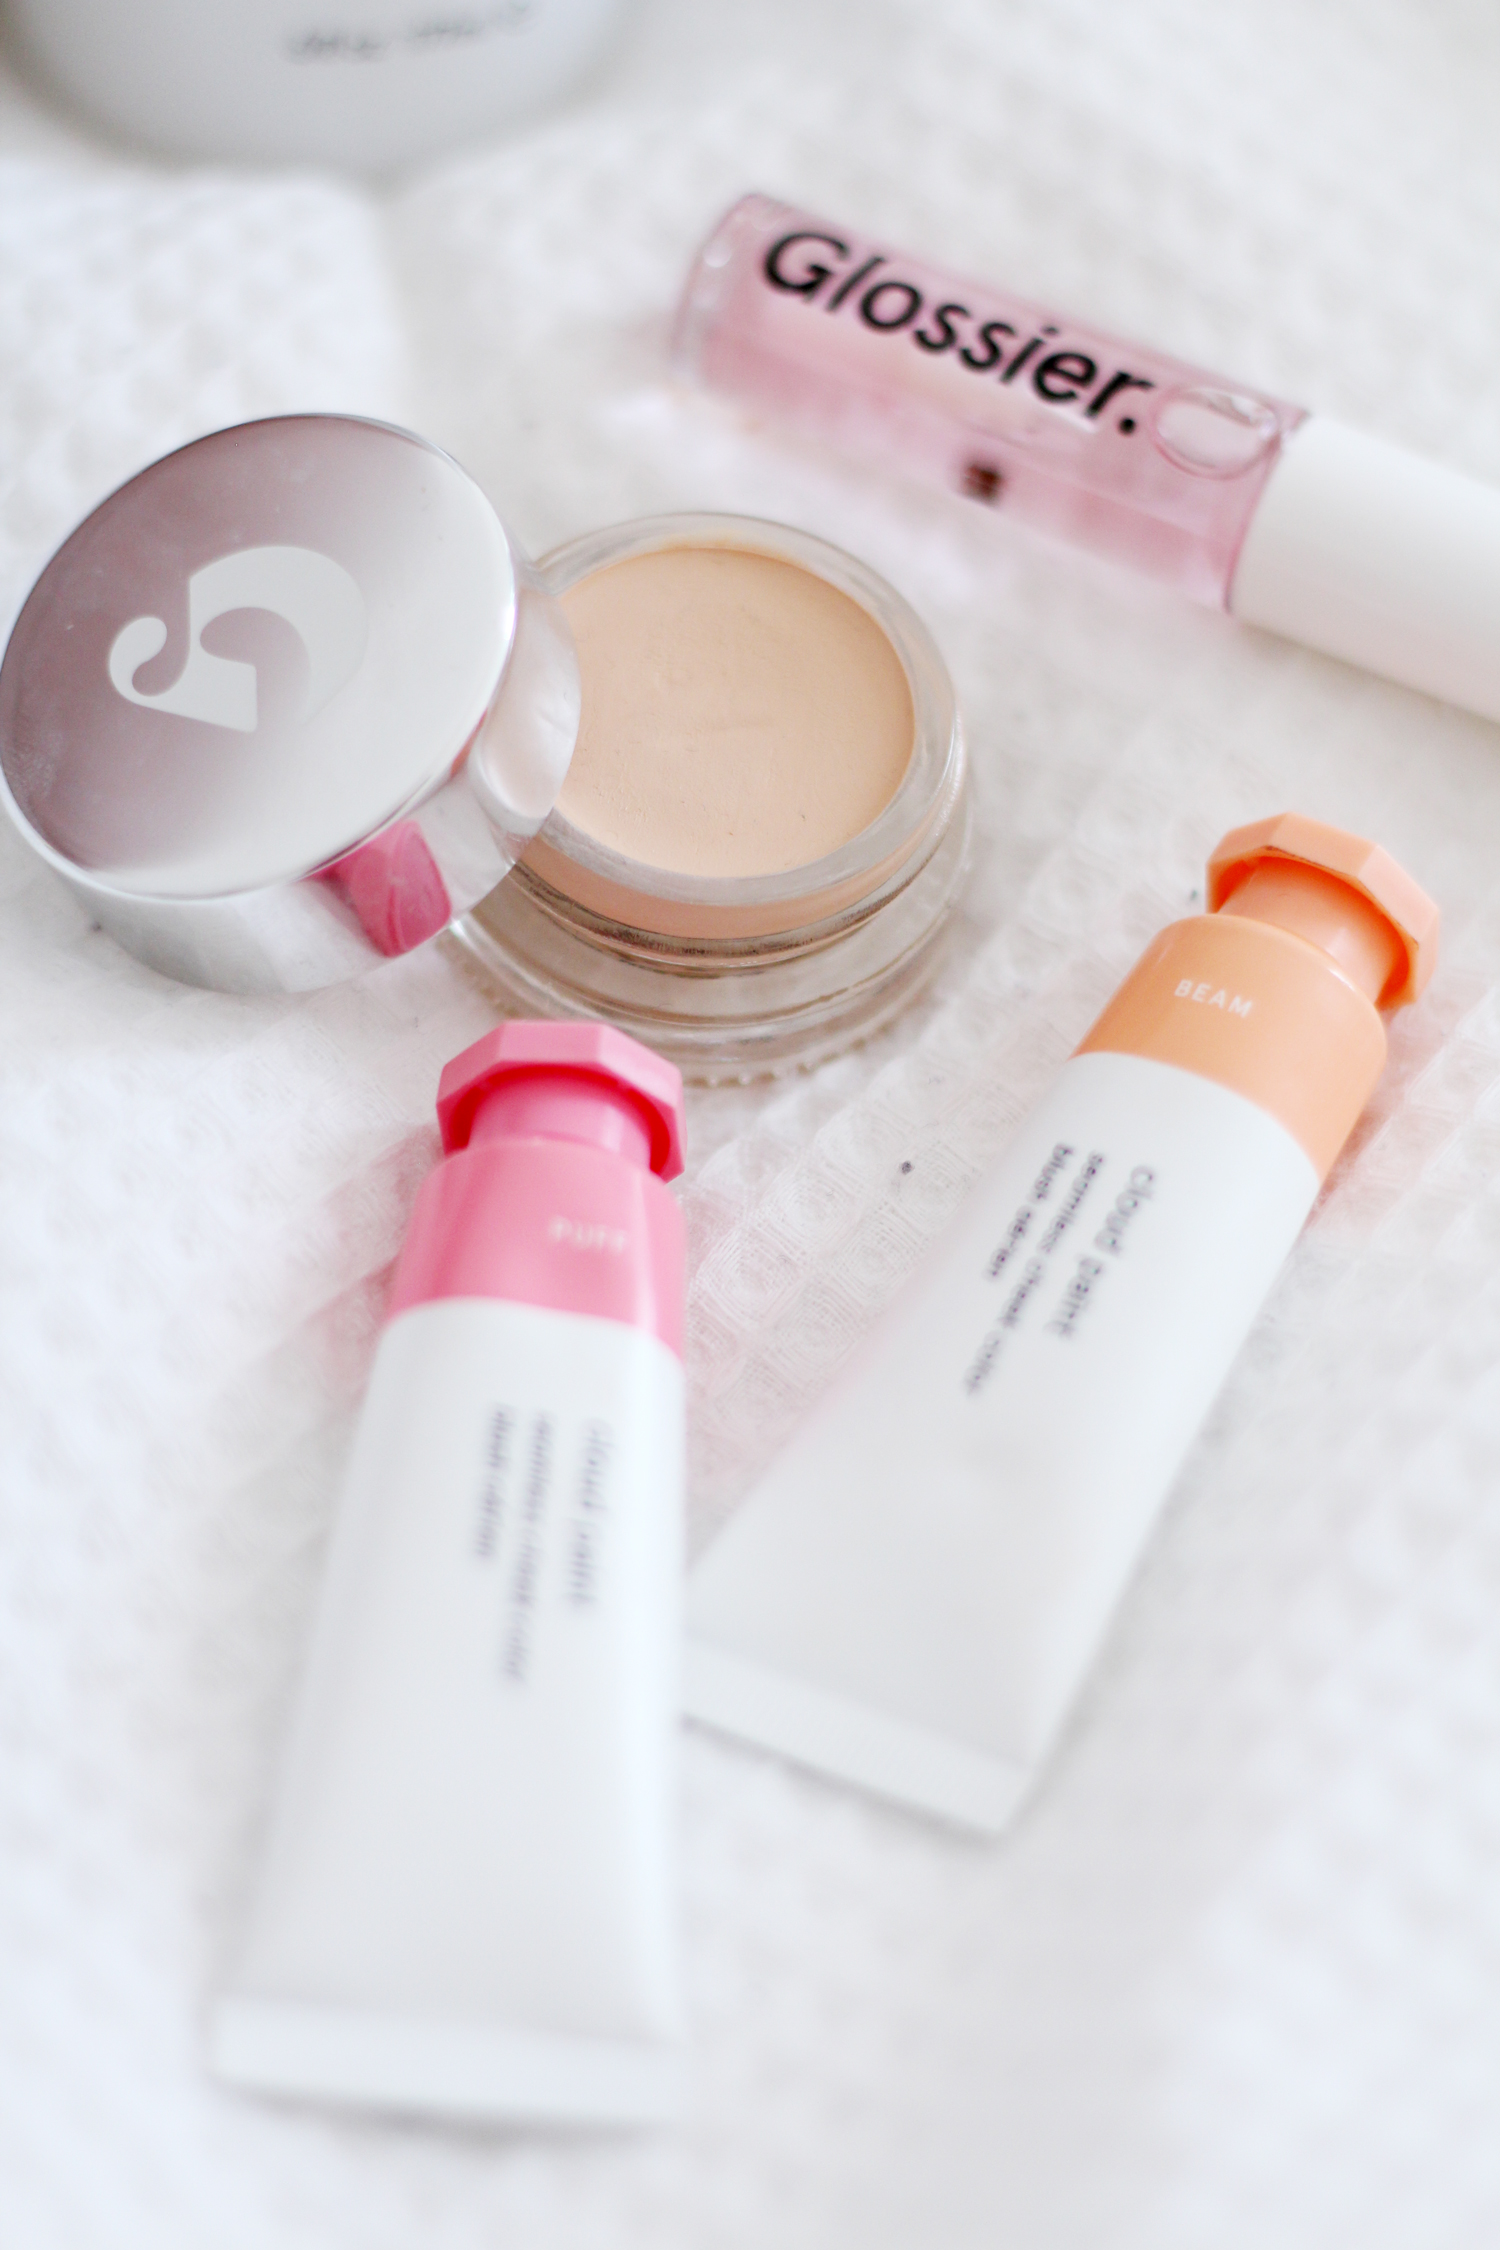 glossier-delivery-uk-review-first-impressions-haul-4